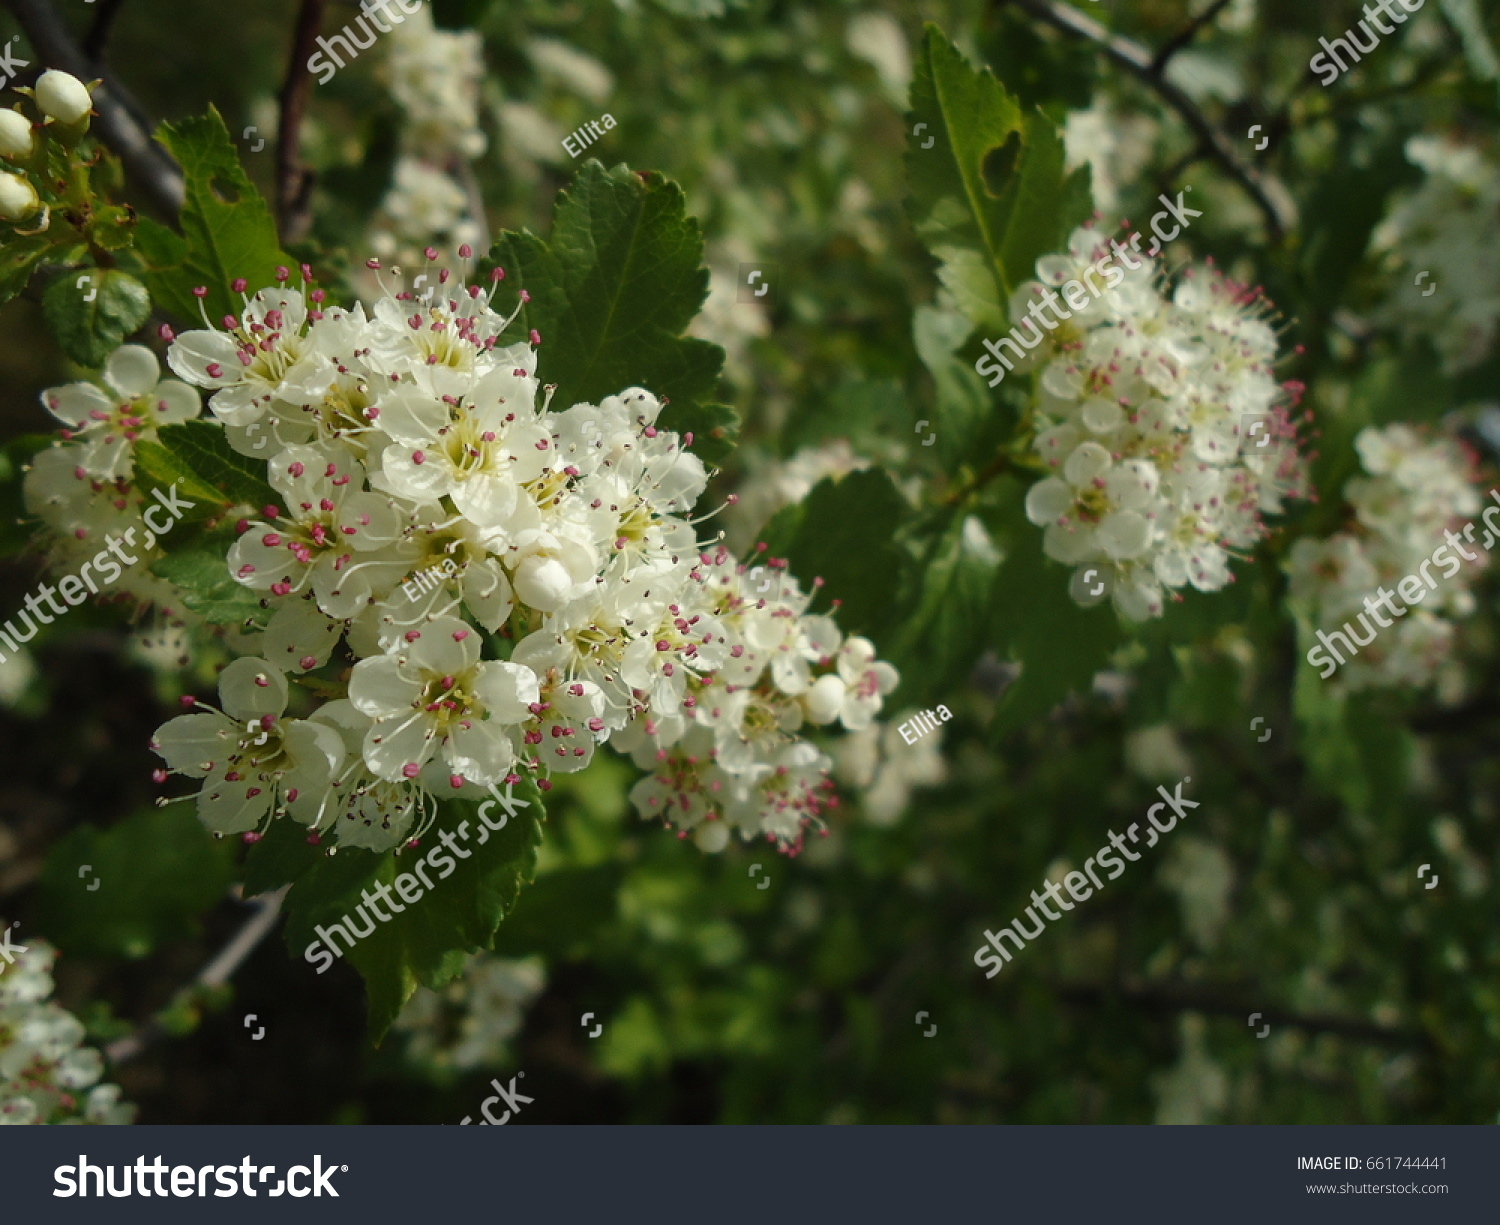 White flower clusters small white blooms stock photo edit now white flower clusters with small white blooms hawthorn in spring mightylinksfo